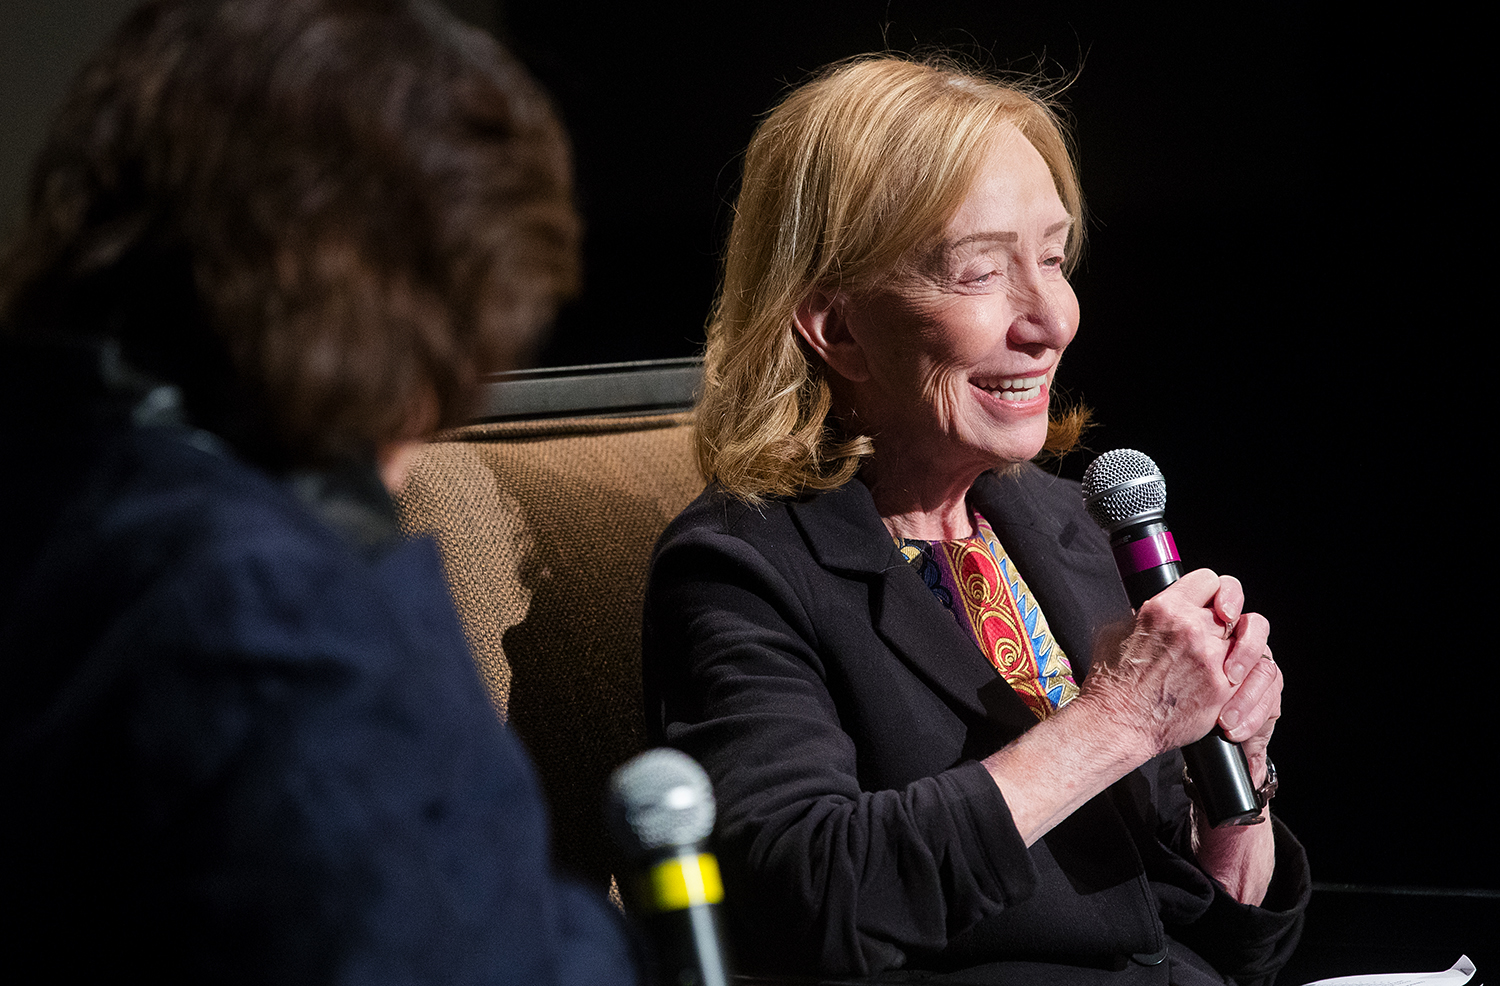 """Doris Kearns Goodwin laughs as she answers questions while seated next to Carla Knorowski, Chief Executive Officer of the Abraham Lincoln Presidential Library Foundation, during an event in the plaza of the Abraham Lincoln Presidential Museum Monday, Oct. 29, 2018. Proceeds from the fundraiser will benefit the campaign to secure a """"permanent home"""" for Lincoln's most personal effects comprising the Barry and Louise Taper Collection that was acquired by the museum in 2007 for $25 million. [Ted Schurter/The State Journal-Register]"""